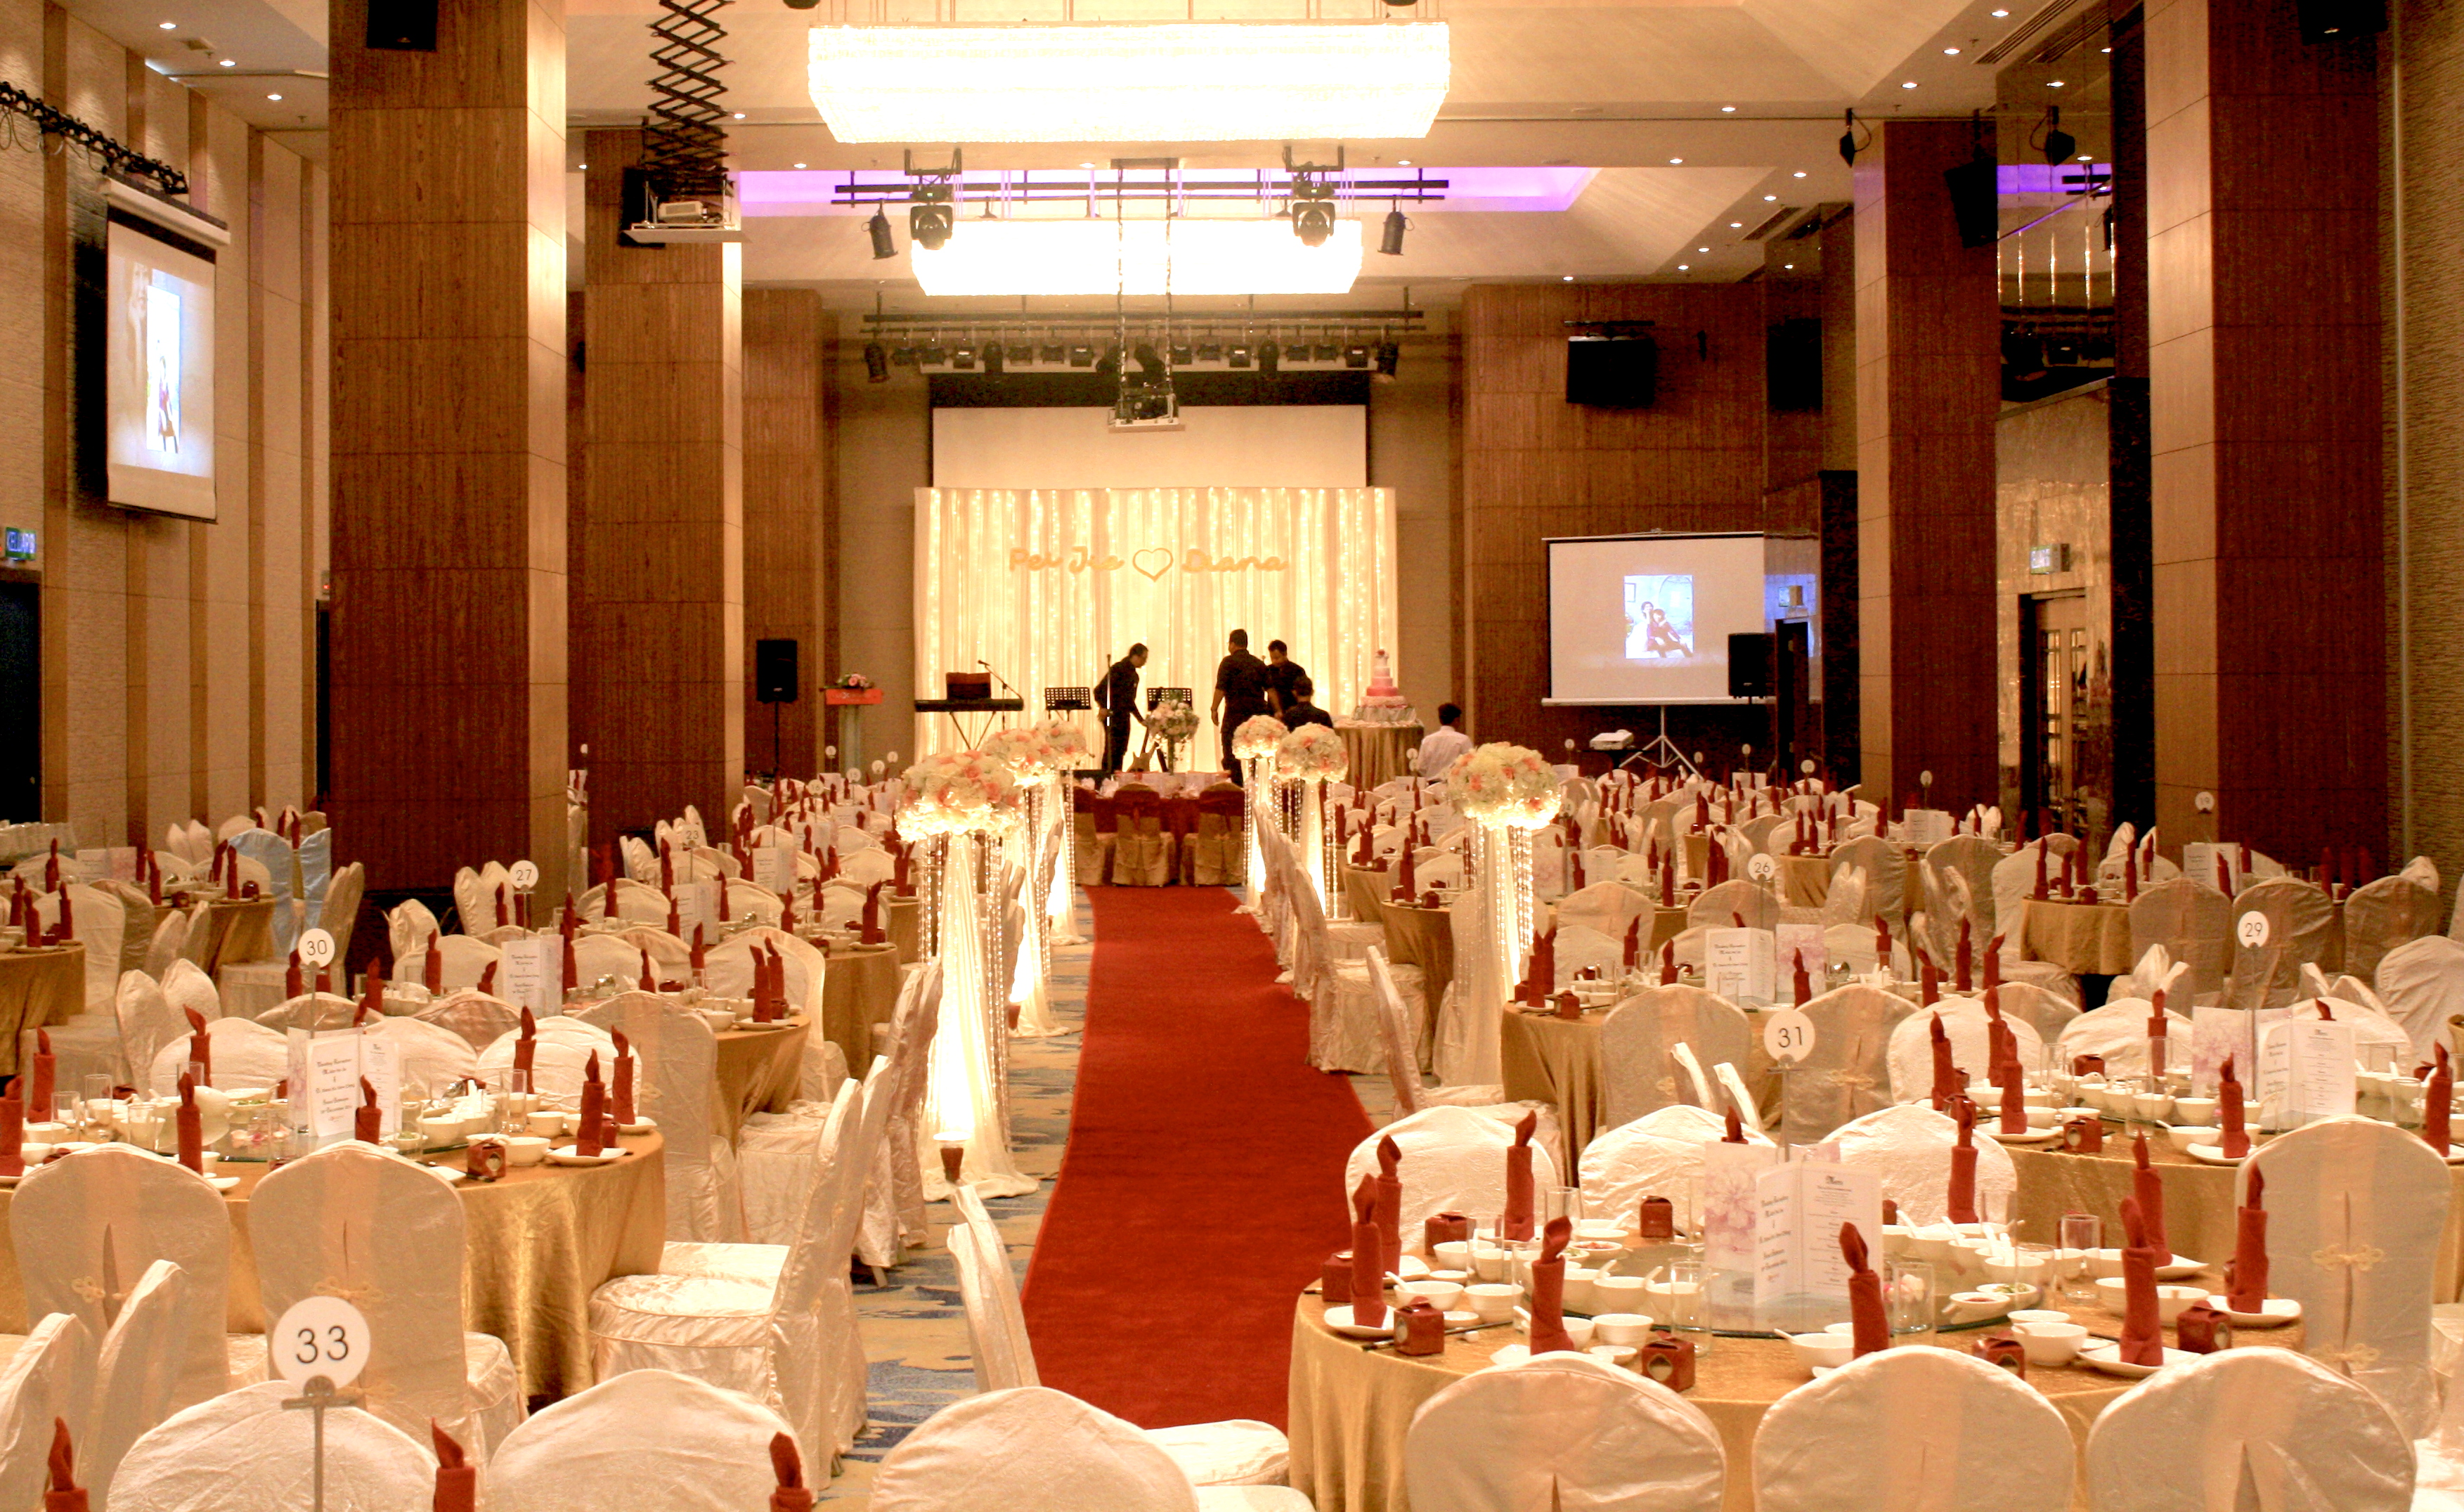 Wedding setup for pei jie diana wedding by lexis suites penang wedding setup for pei jie diana wedding by lexis suites penang bridestory junglespirit Images